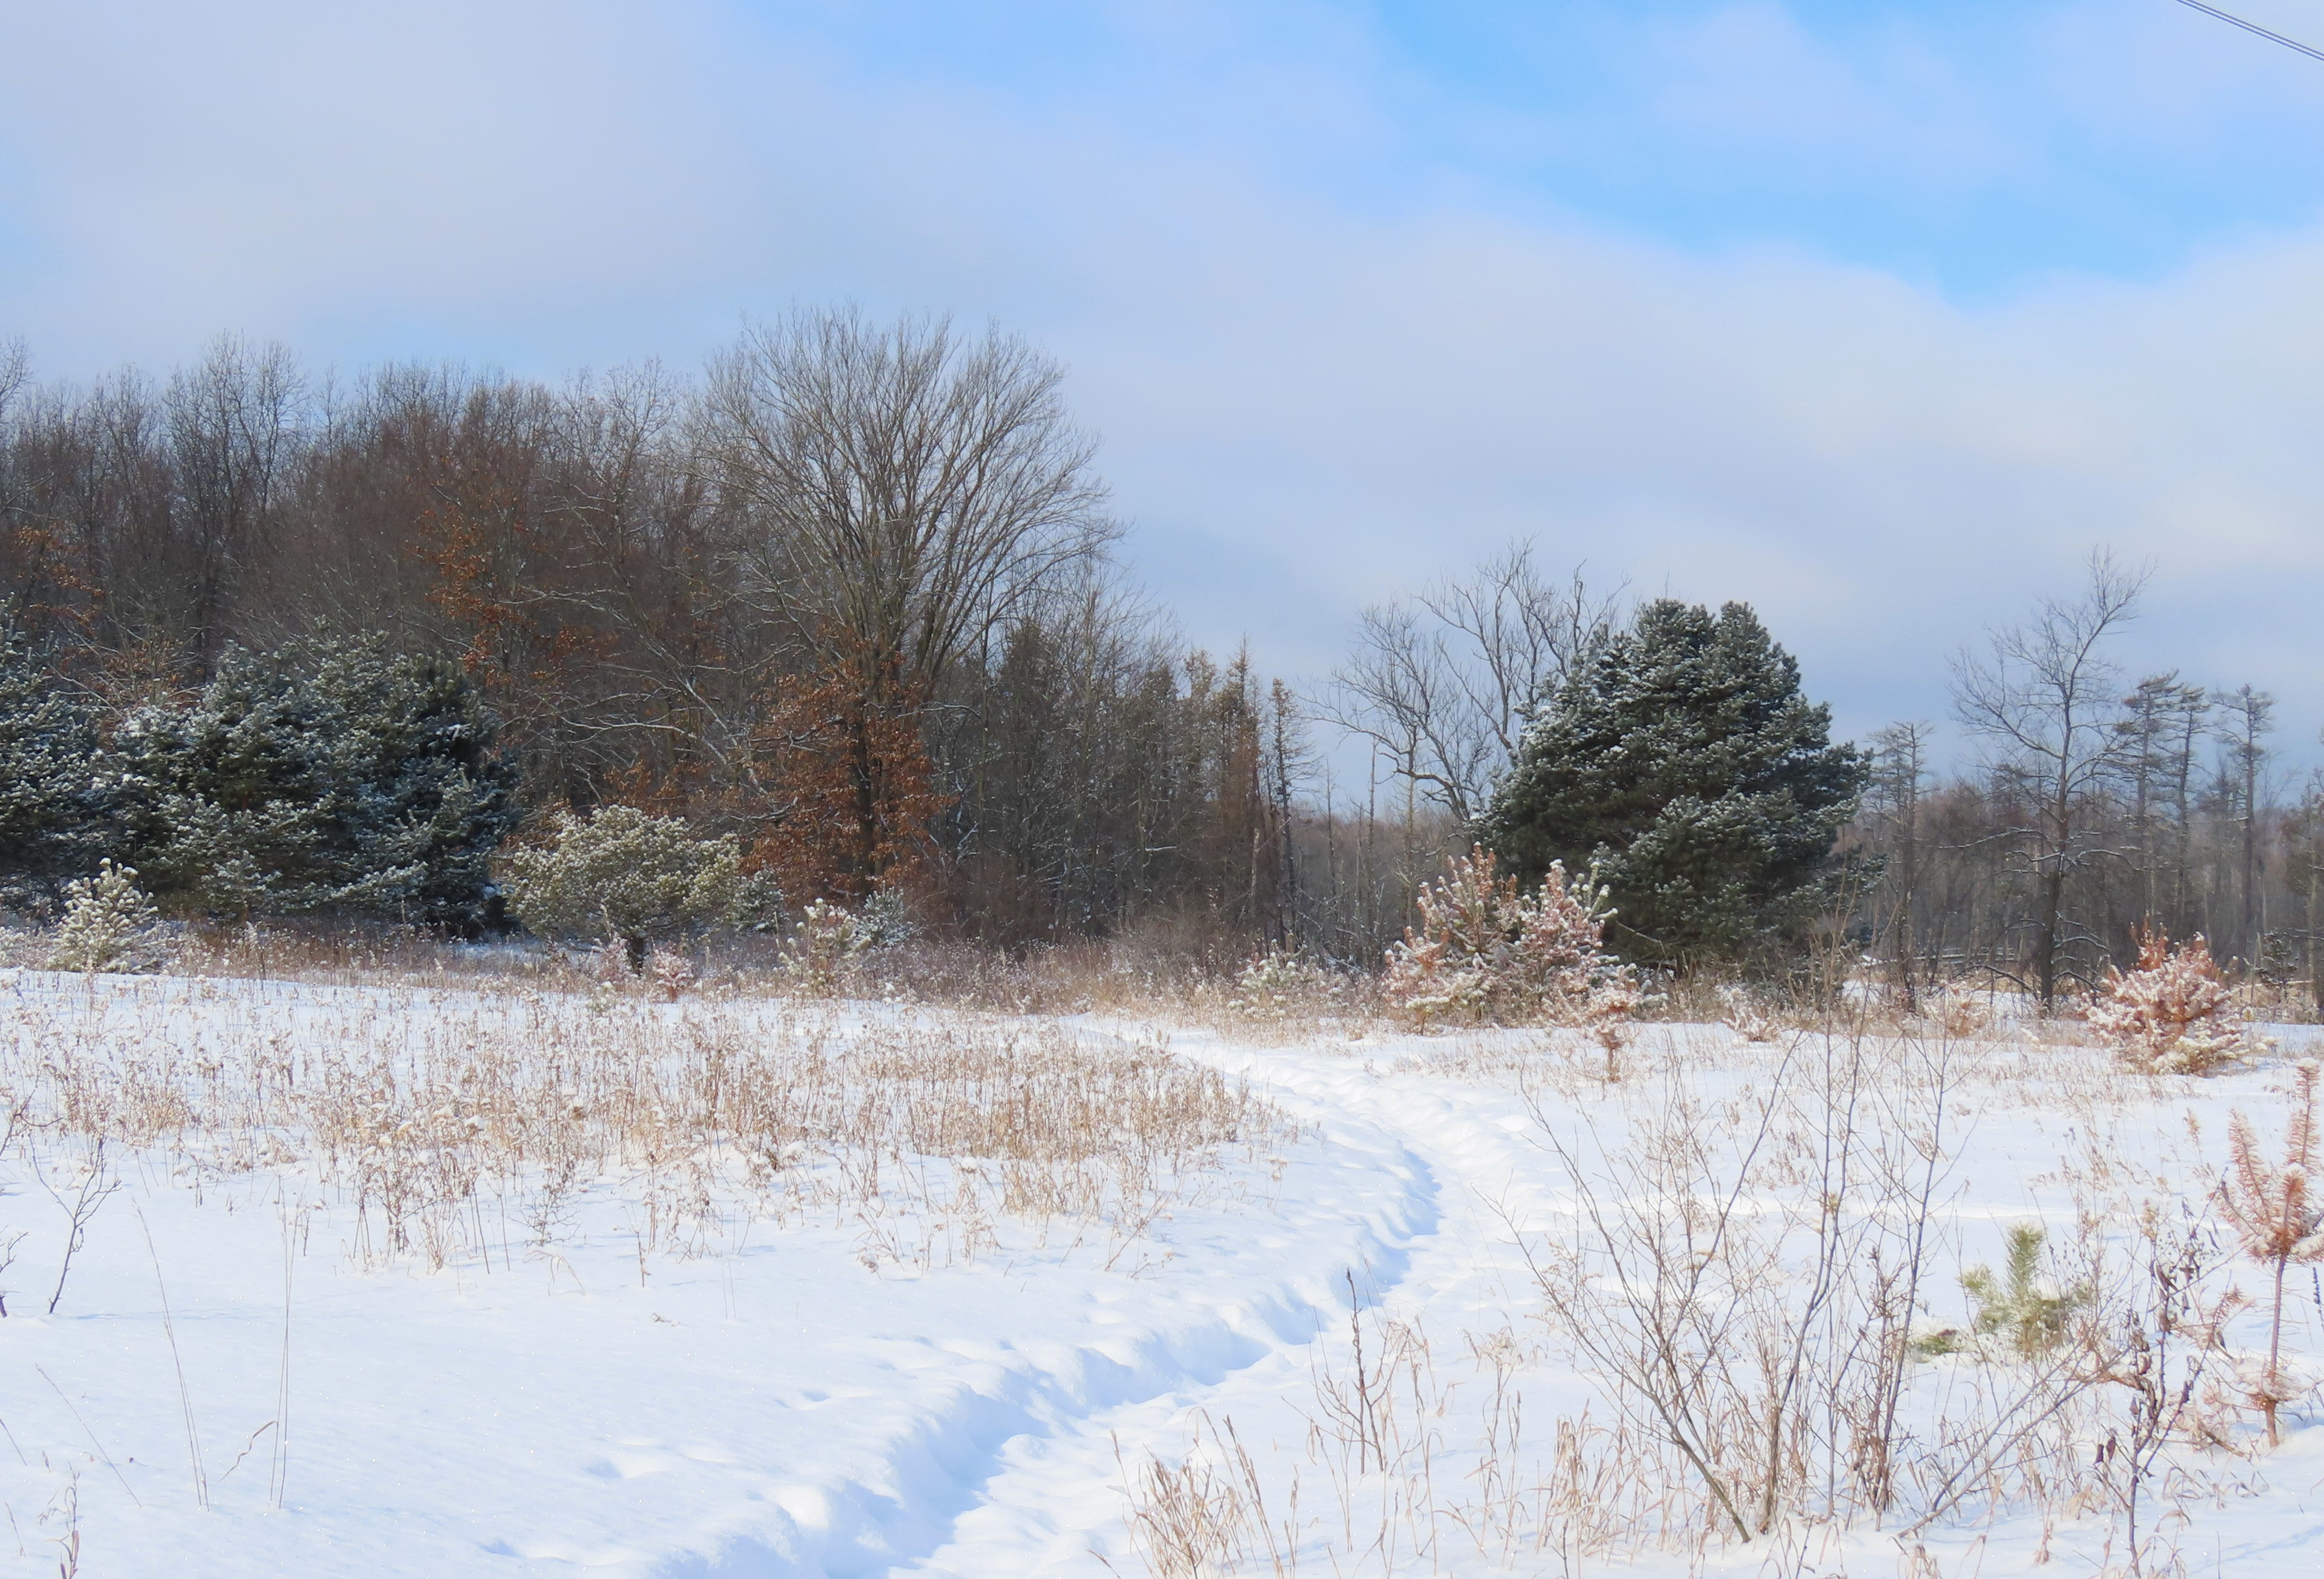 A snowshoe path winds through a snowy meadow